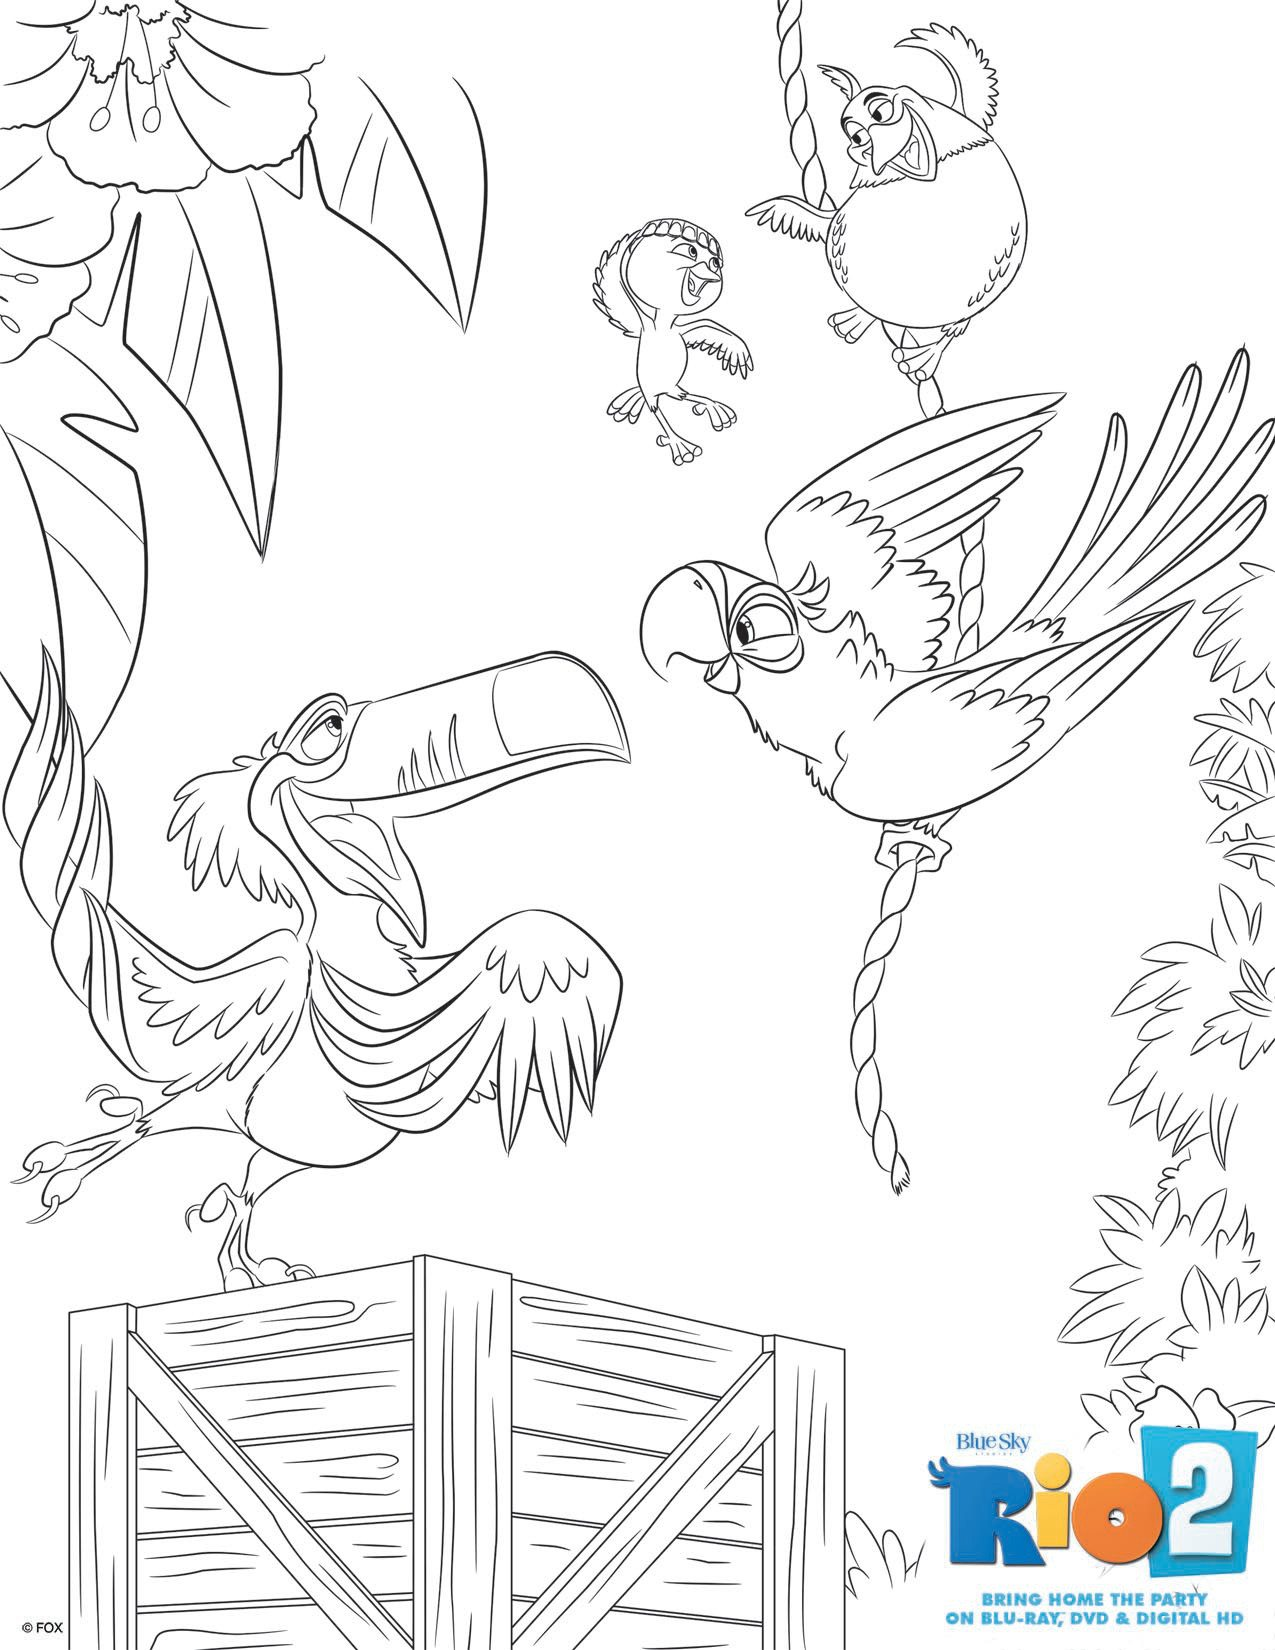 Rio 2 Coloring pages to download (part 2)